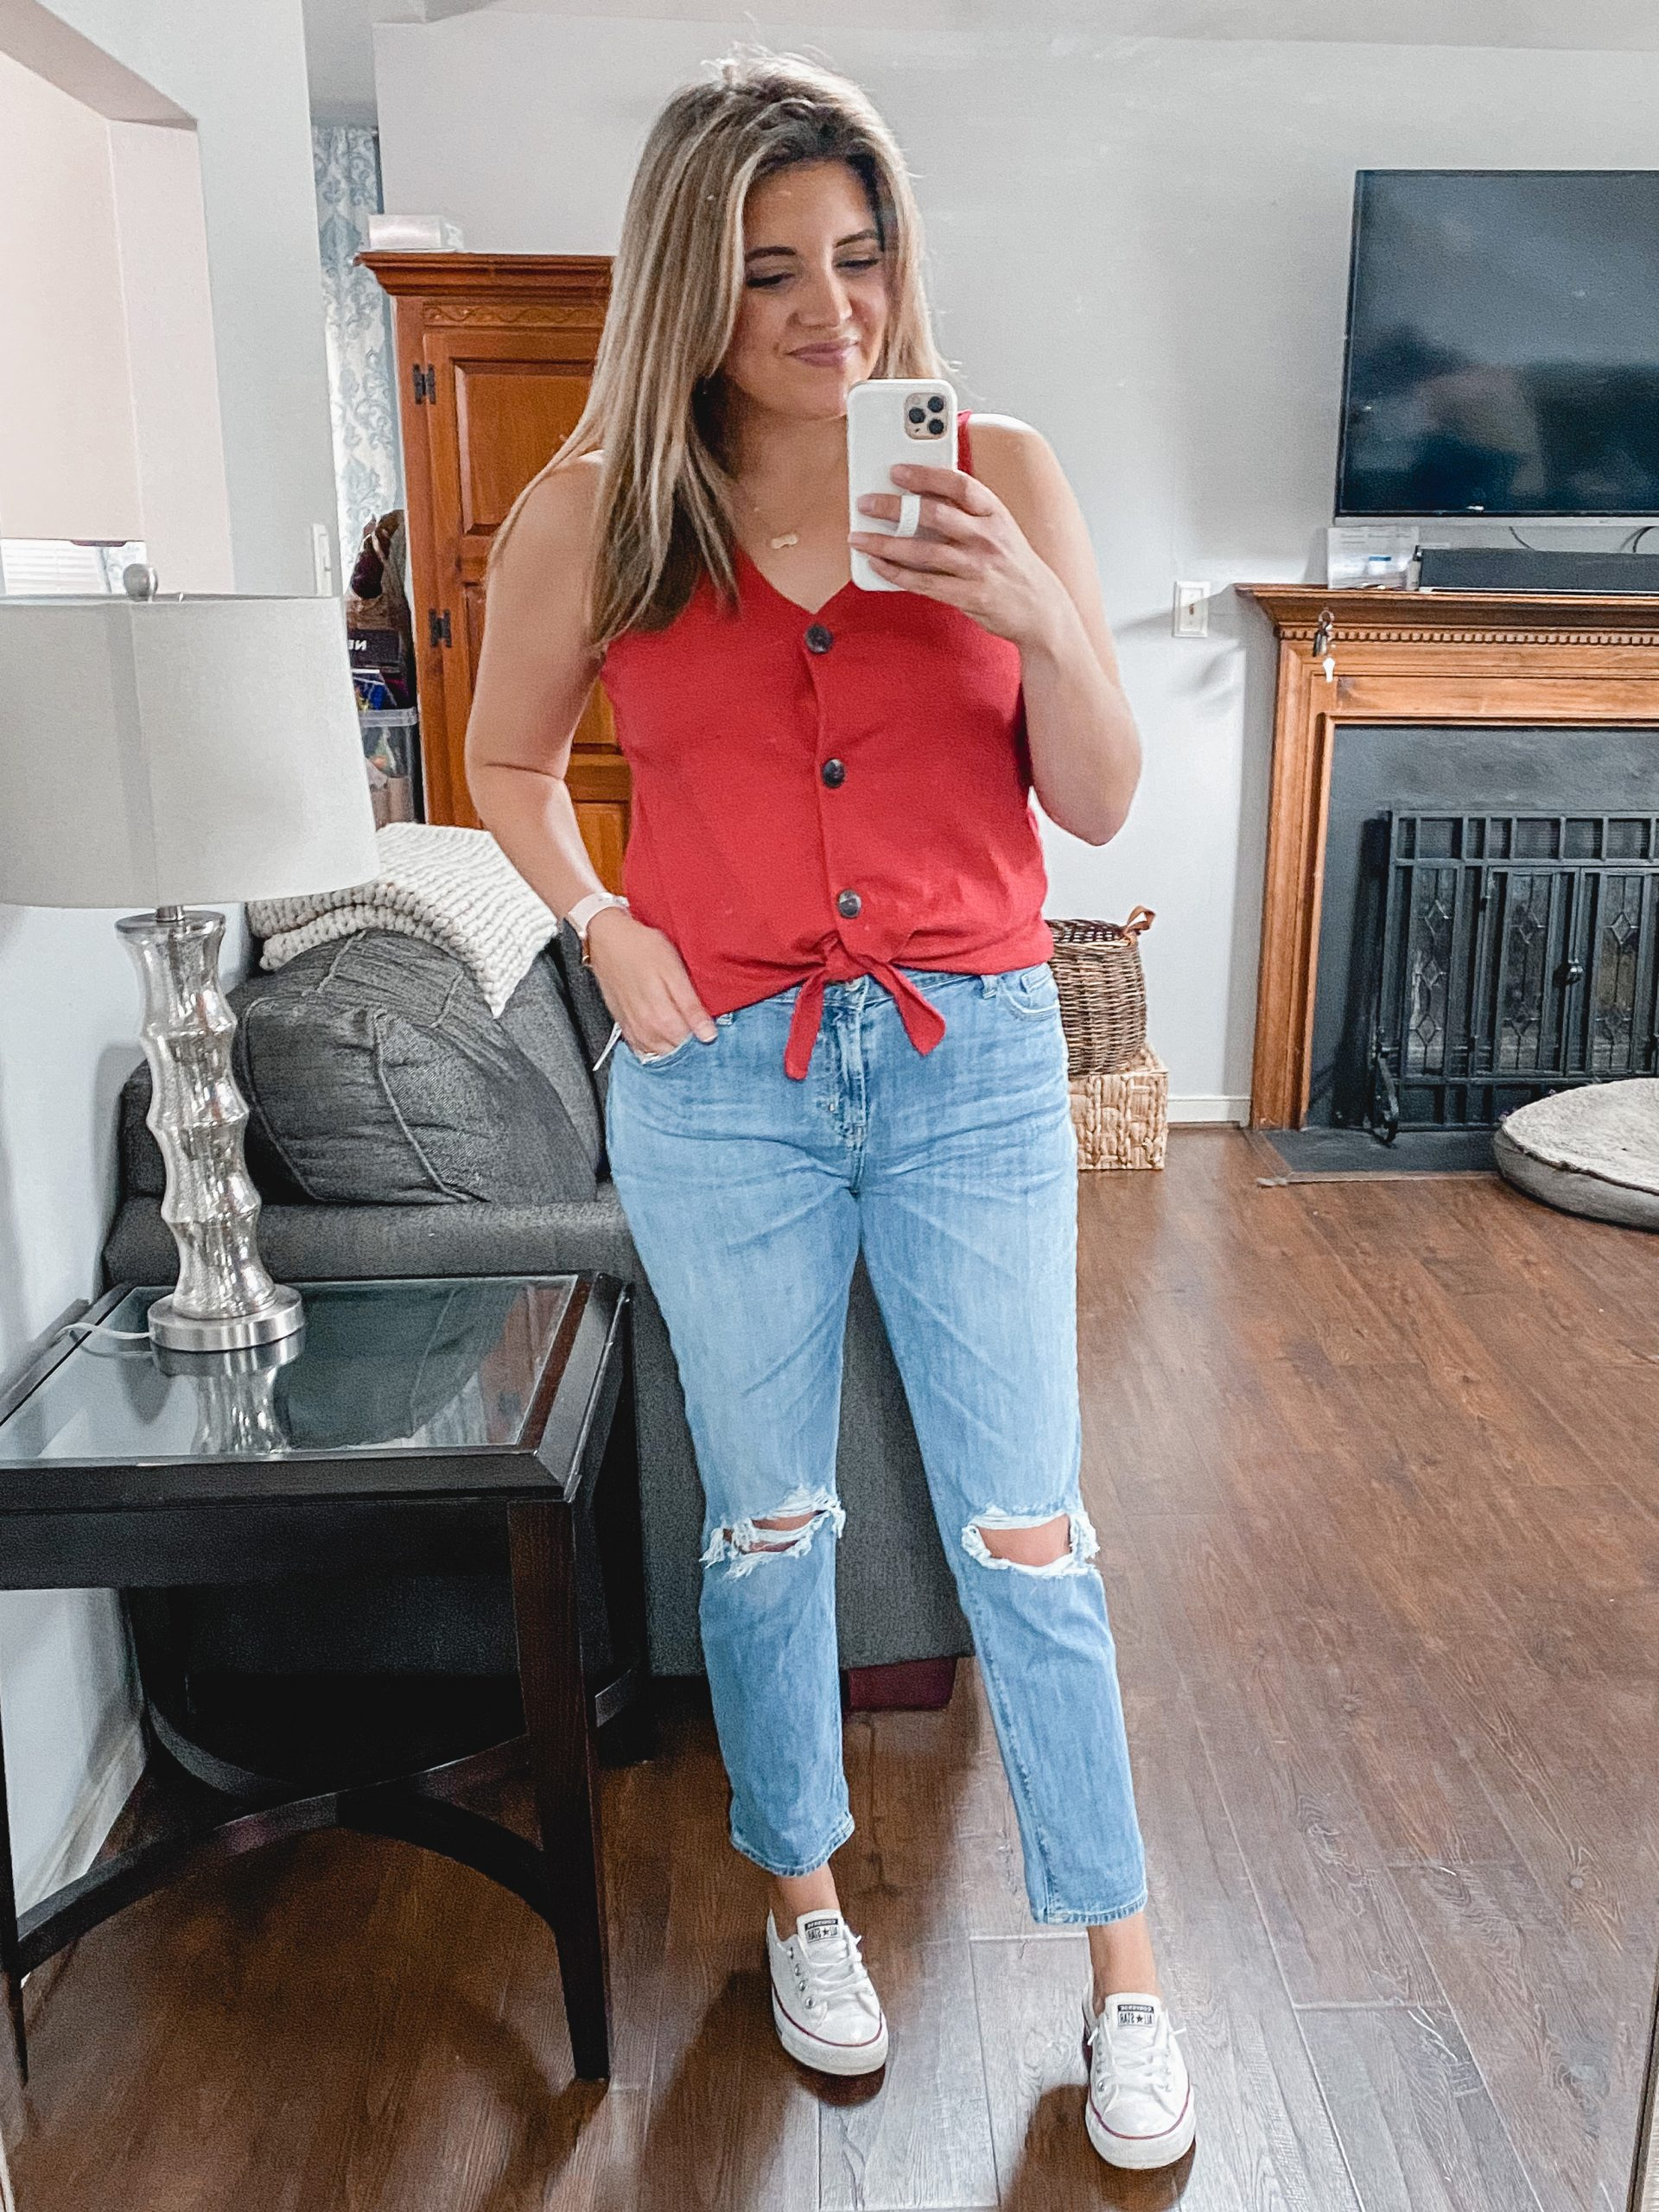 Virginia blogger, Lauren Dix, shares new Old Navy spring arrivals in her Old Navy try on.